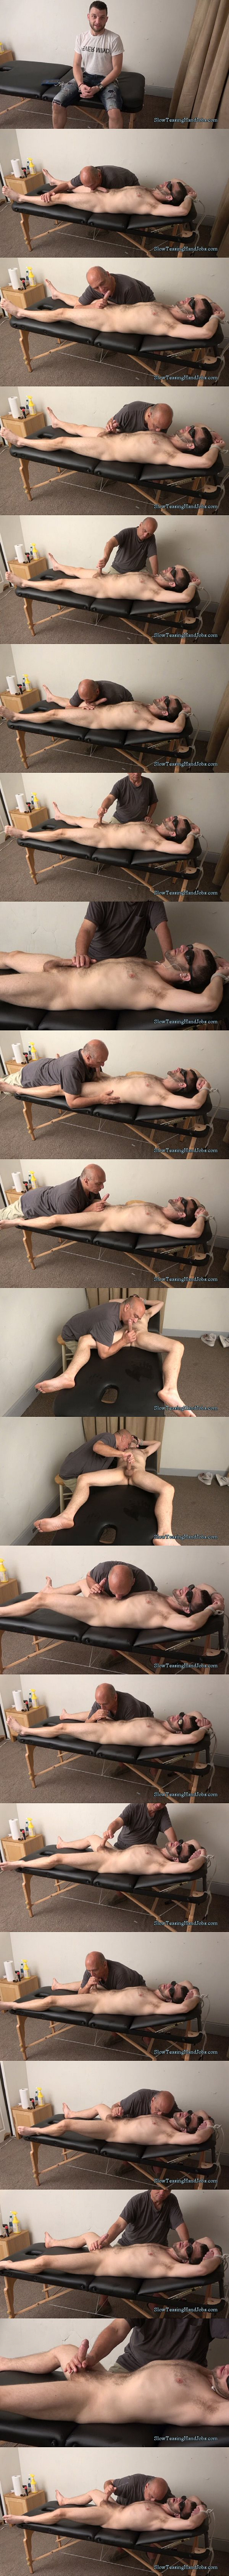 Hot new model, straight guy Nick gets tied up, blindfolded, sucked and jerked off by master Rob in He Never Had an Orgasm Like That Before in Slowteasinghandjobs 02